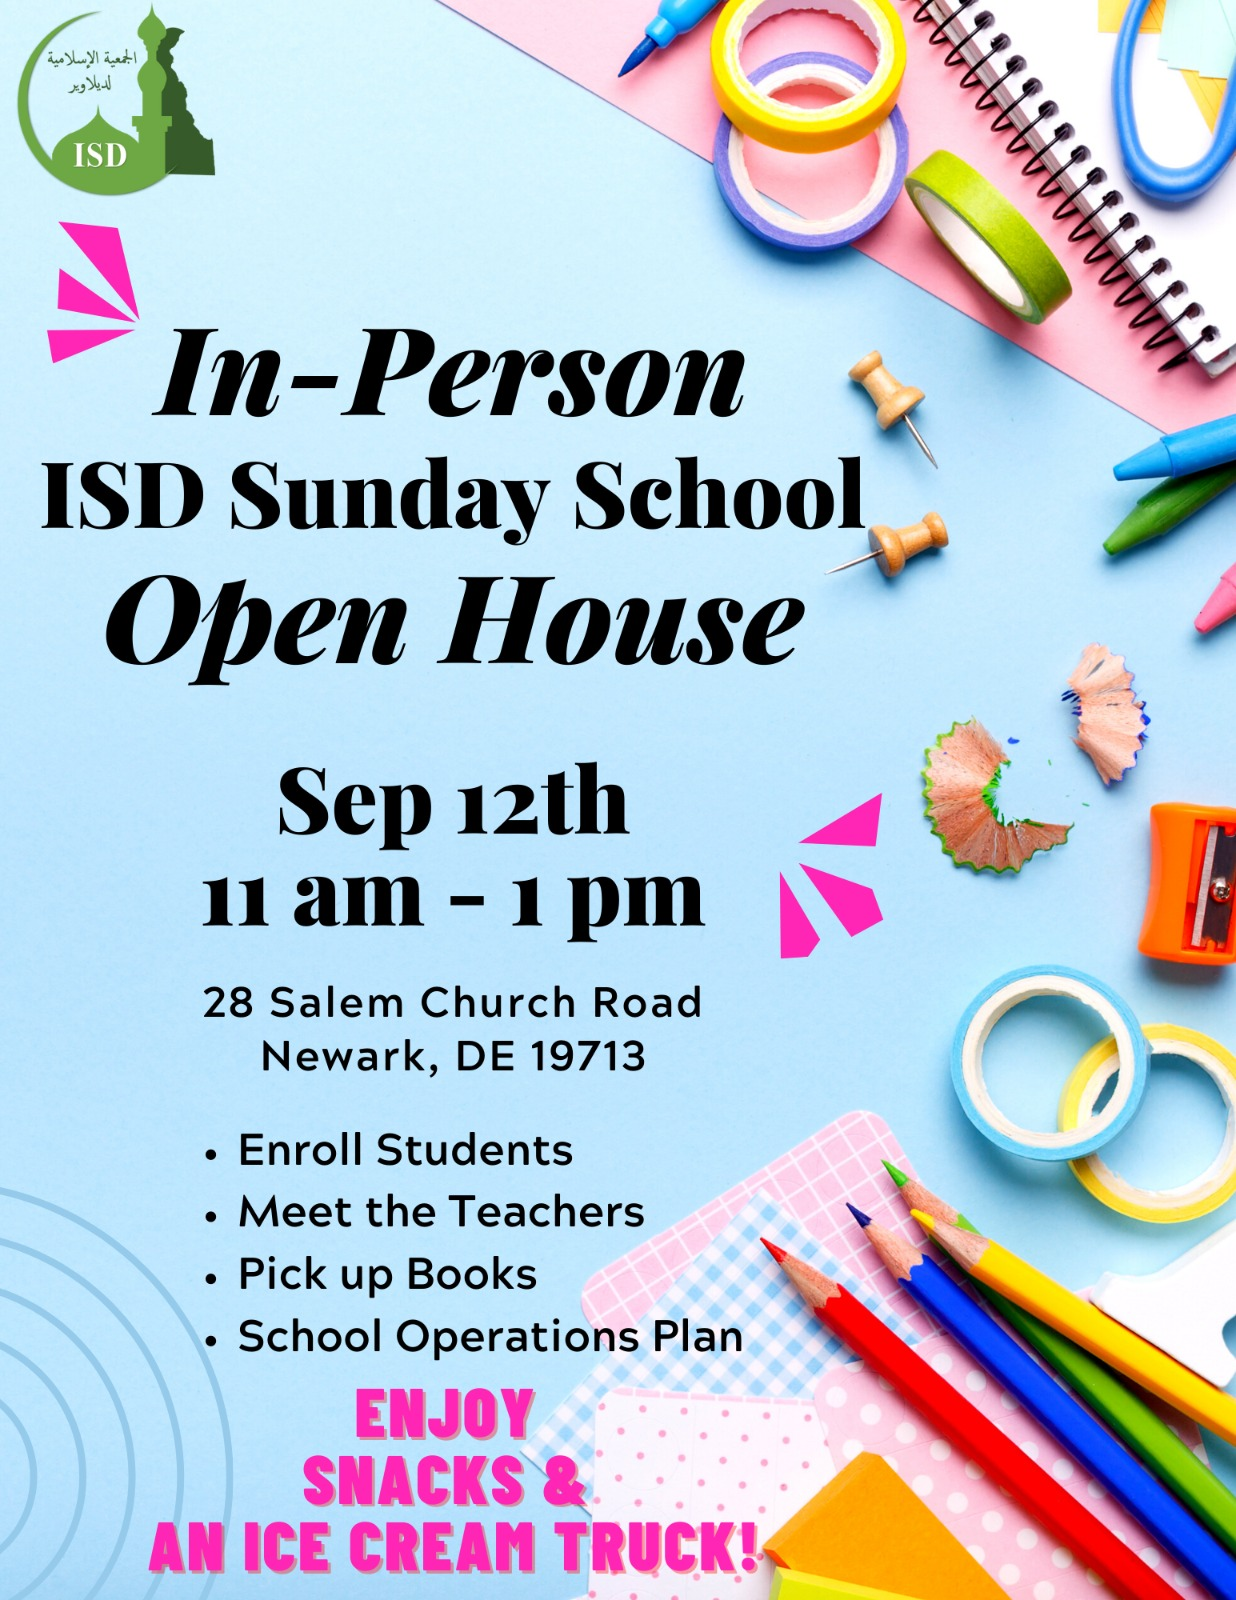 ISD Sunday School In-Person Open House